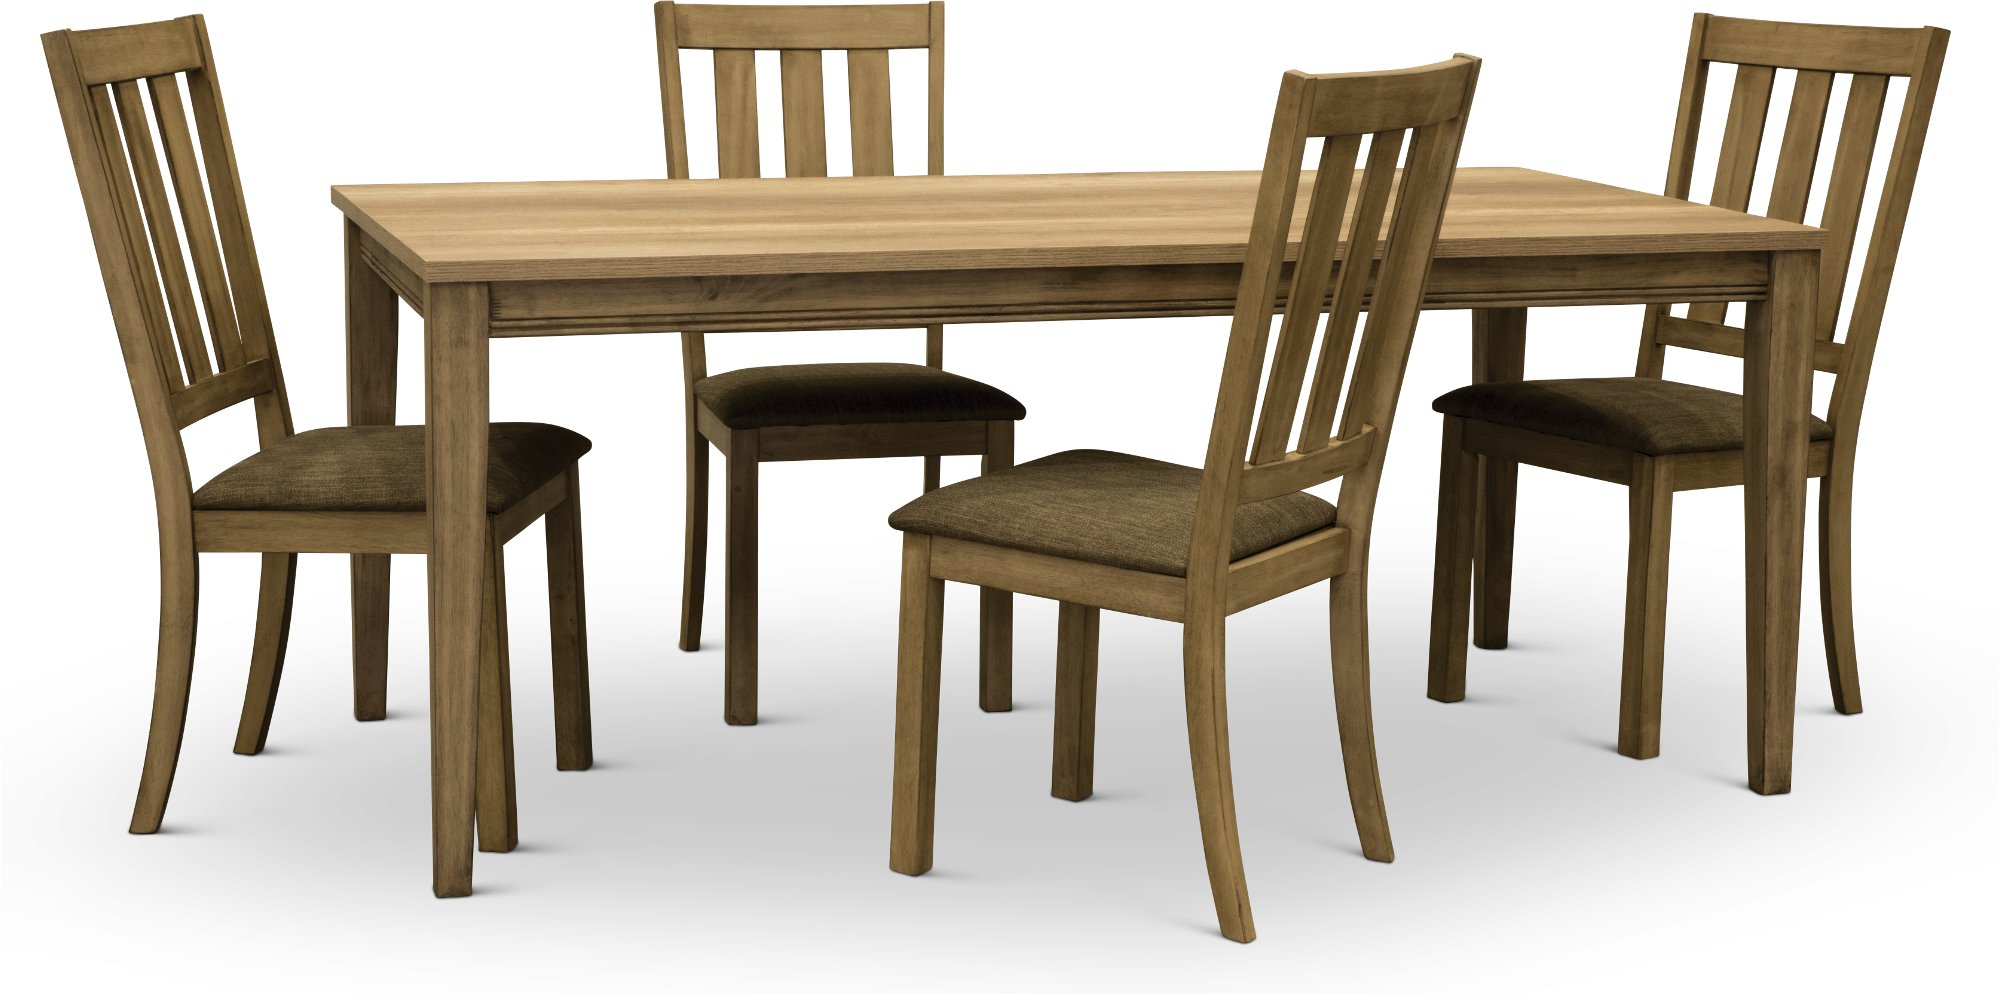 Sandstone Traditional 5 Piece Dining Set   Sun Valley